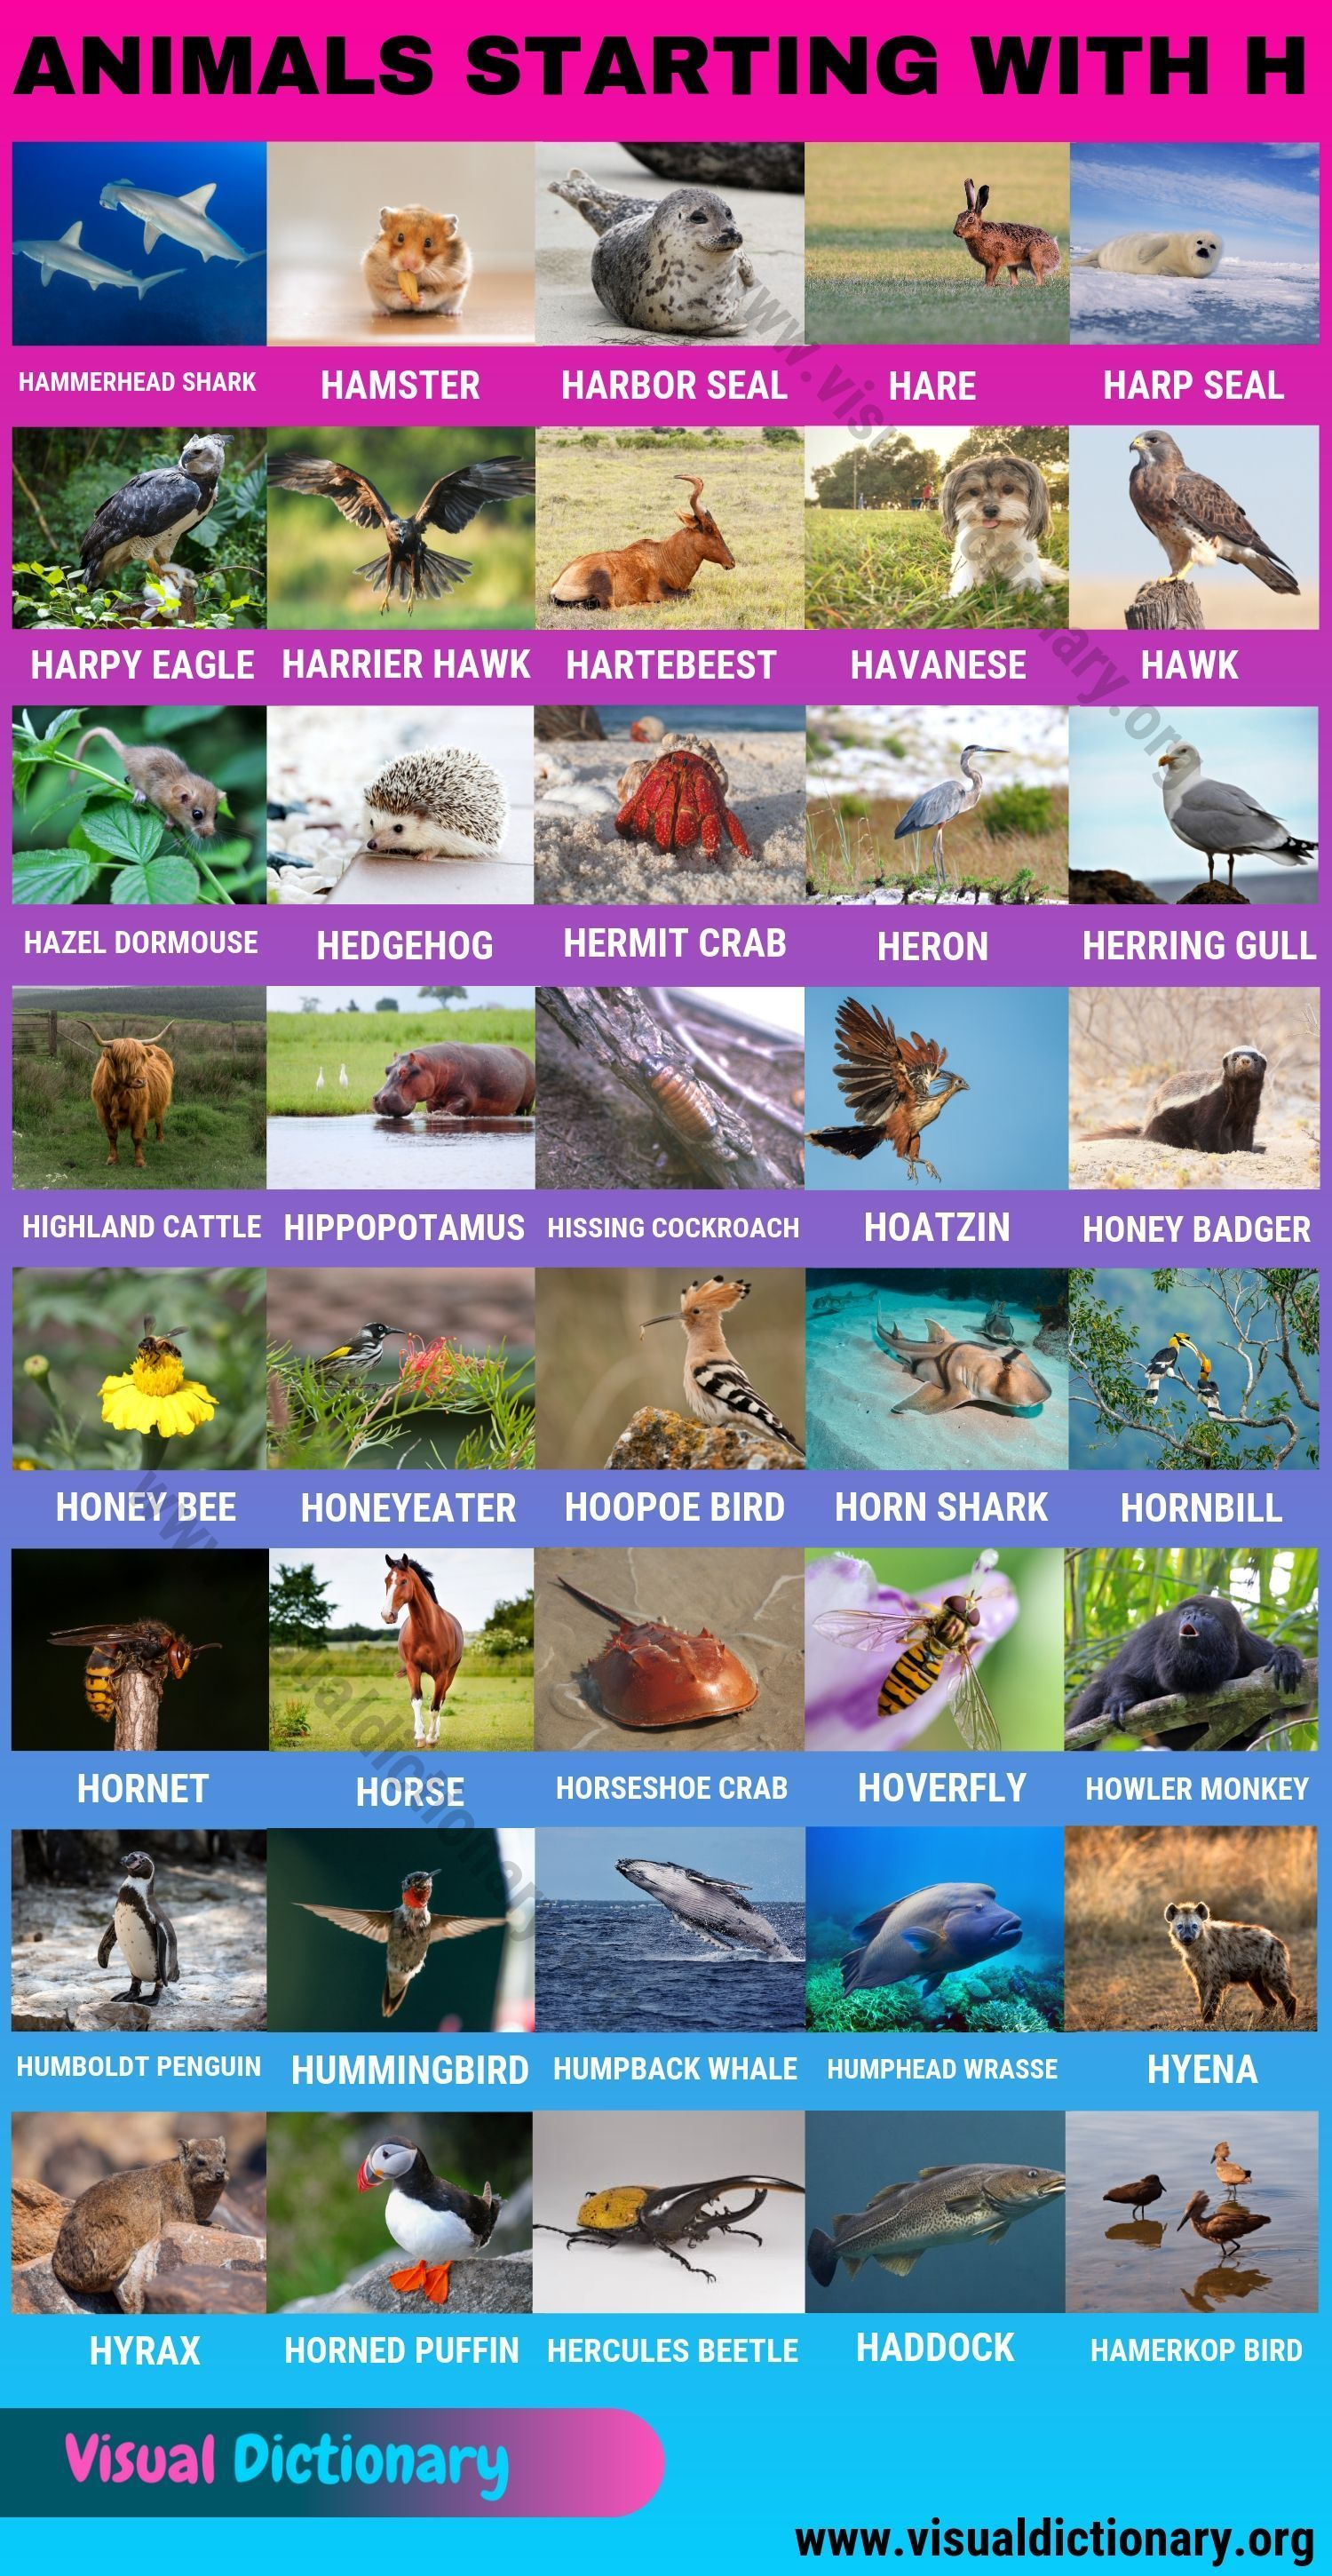 Animals That Start With H 40 Intriguing Animals Starting With H Visual Dictionary Em 2020 Vocabulario Expressoes